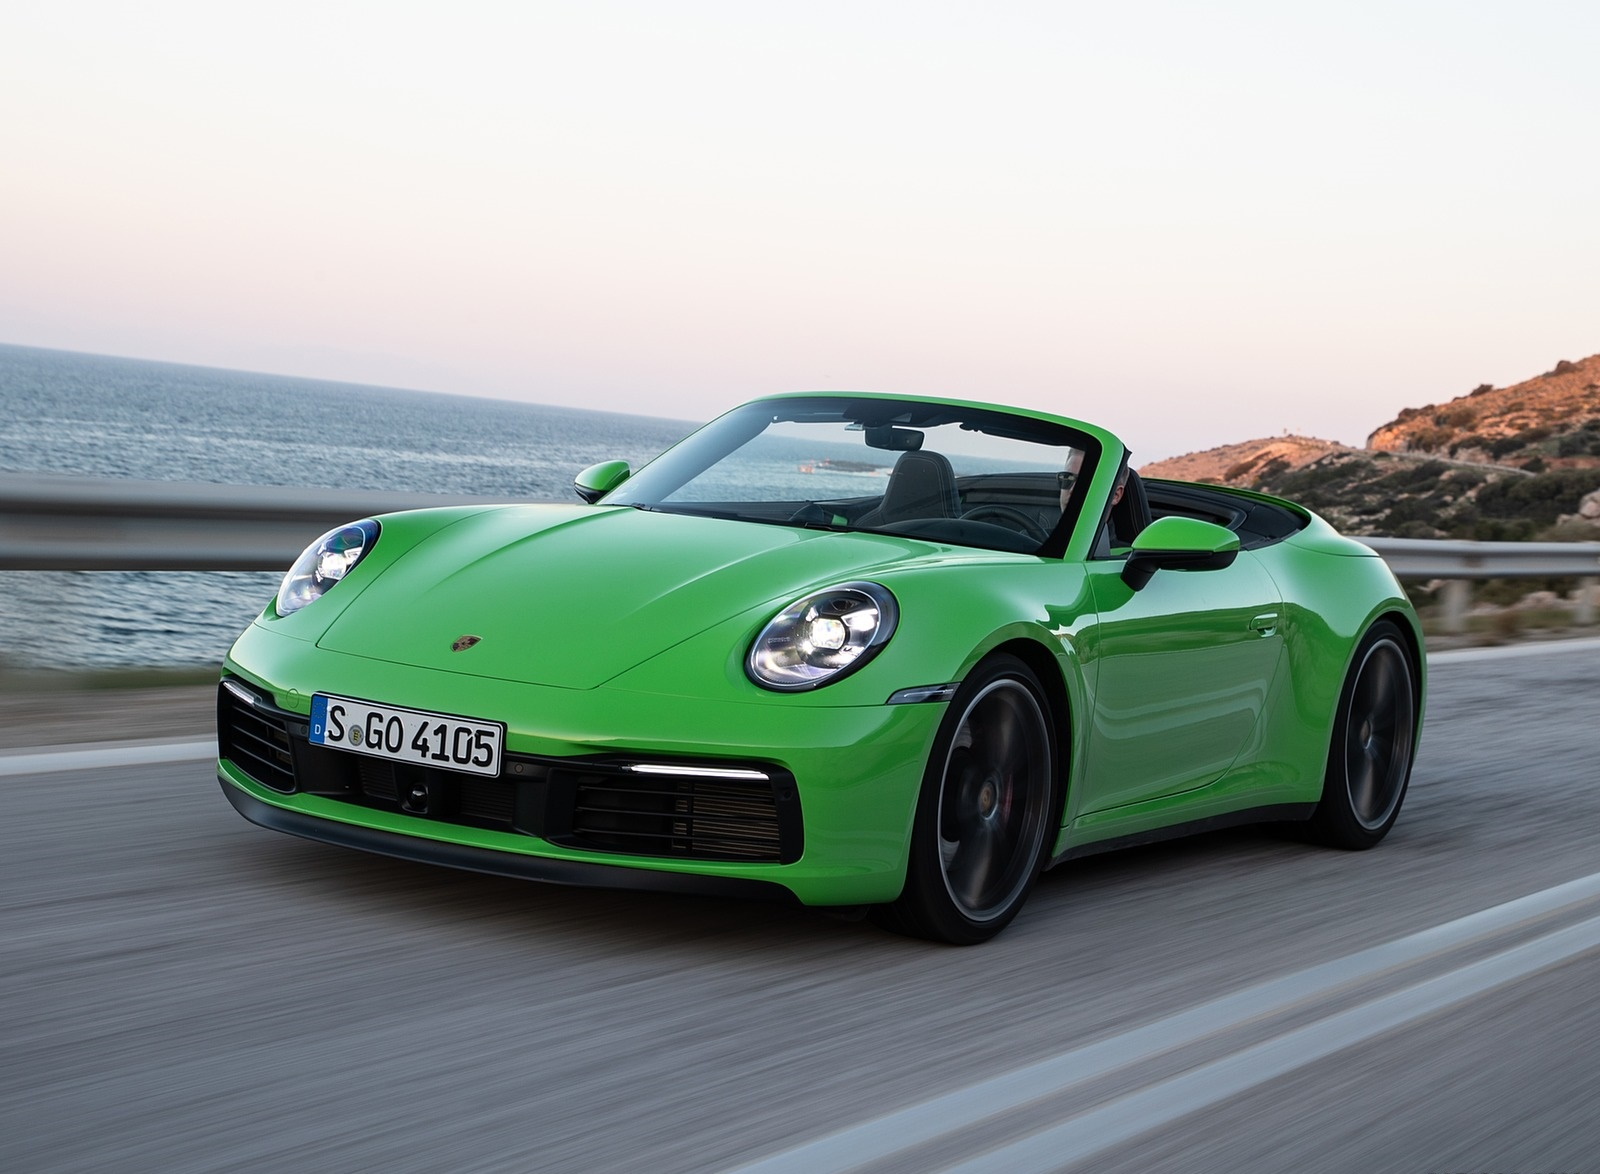 2020 Porsche 911 Carrera S And 4S Cabriolet Wallpapers 193 HD 1600x1174